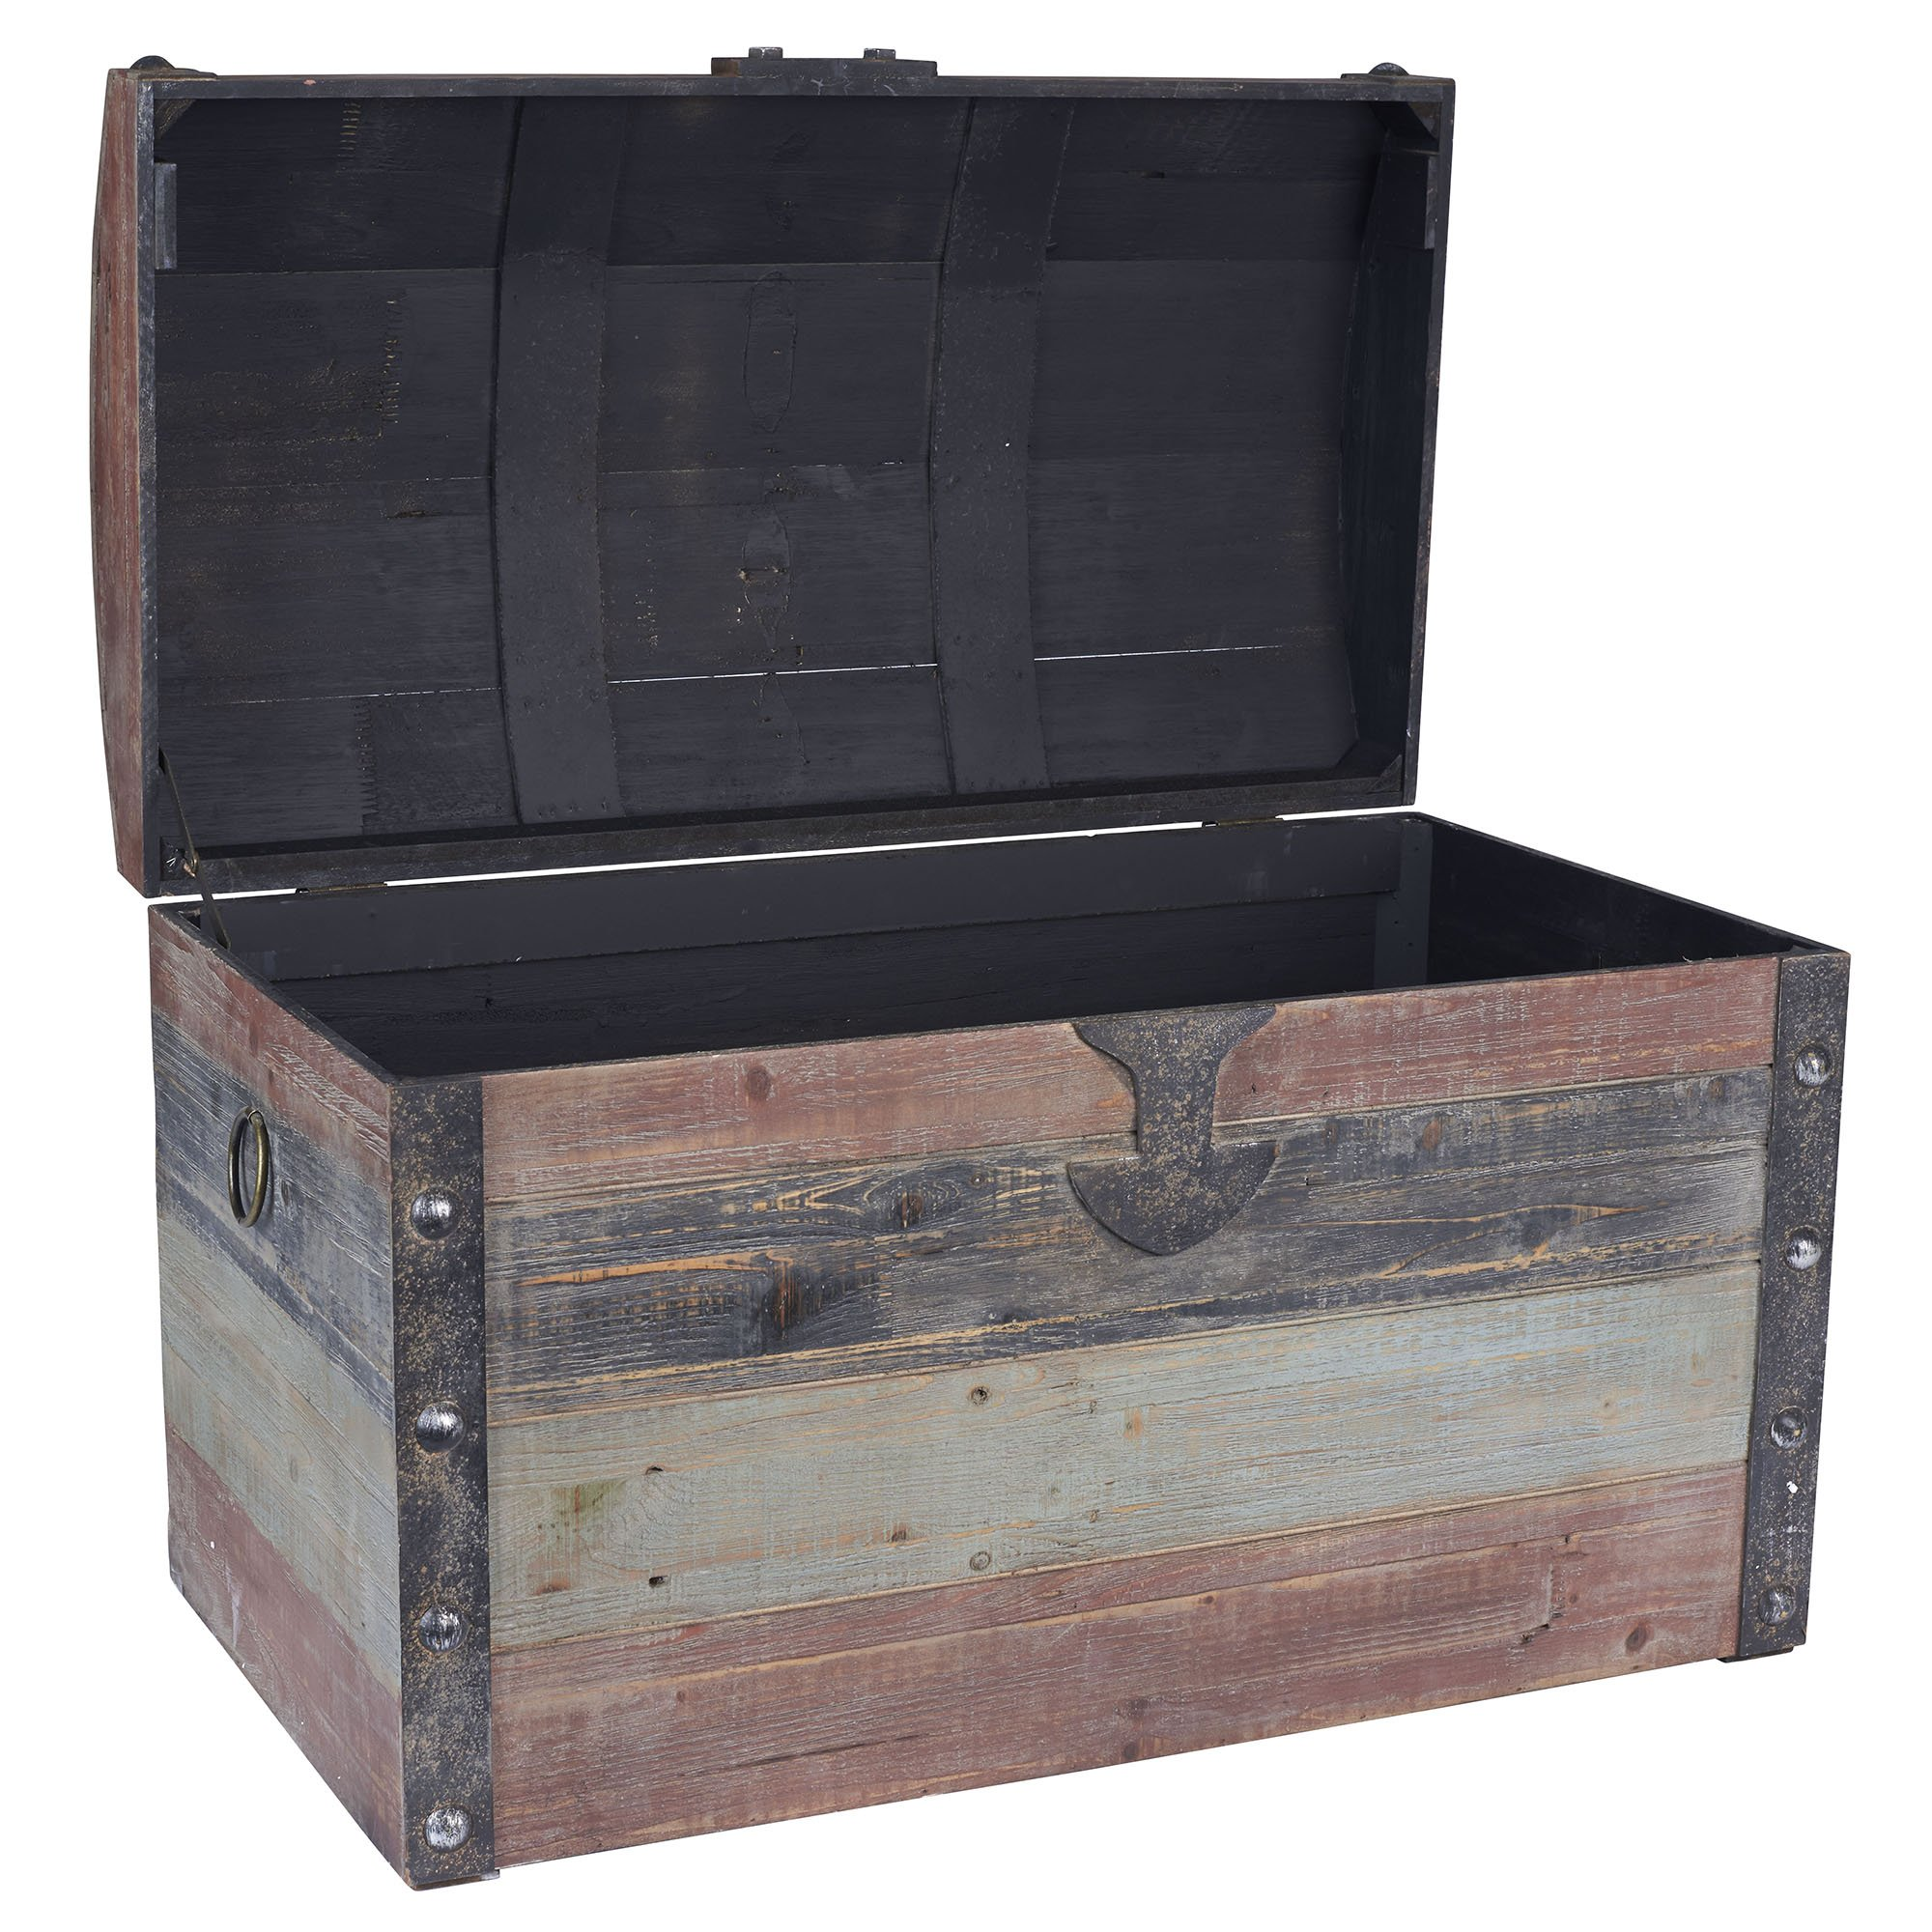 Household Essentials Stripped Weathered Wooden Storage Trunk, Large by Household Essentials (Image #2)